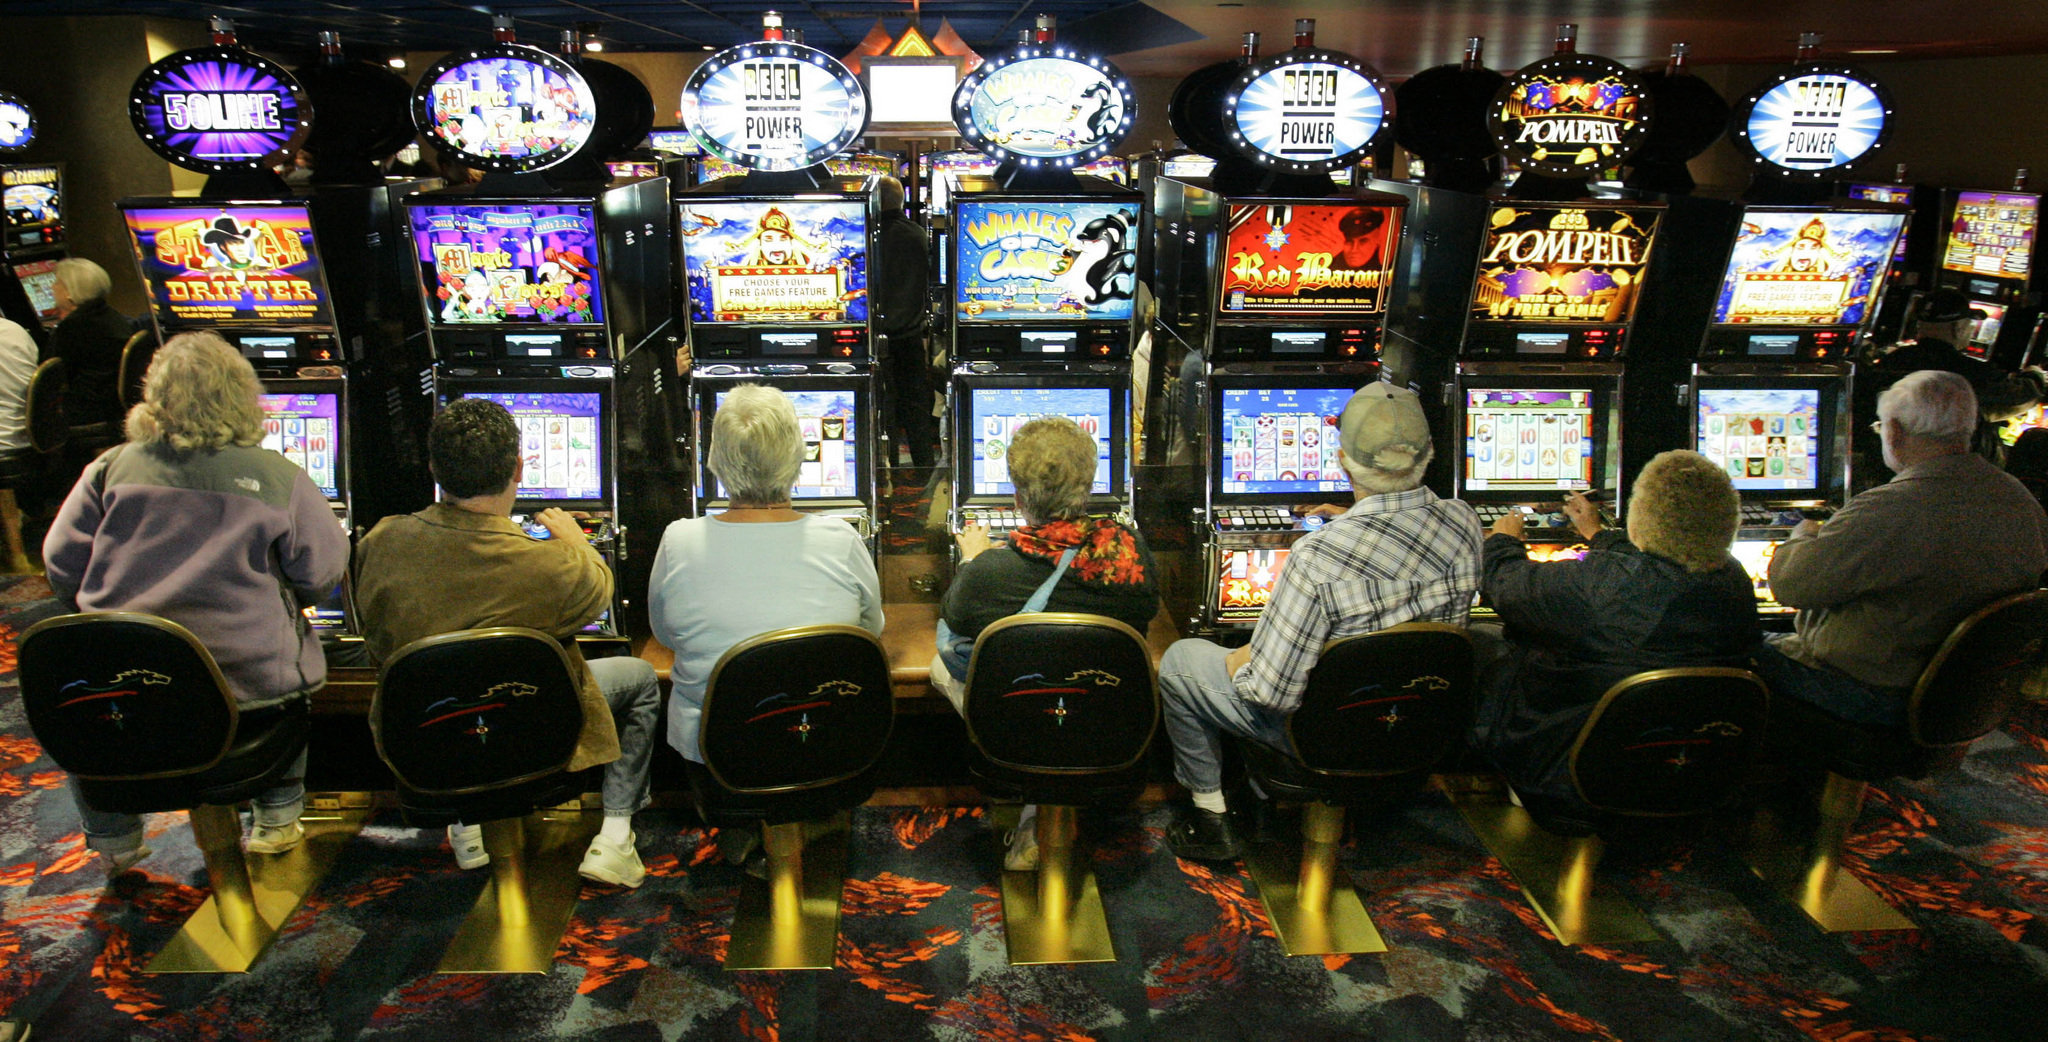 Slot machine stand for gaming industry